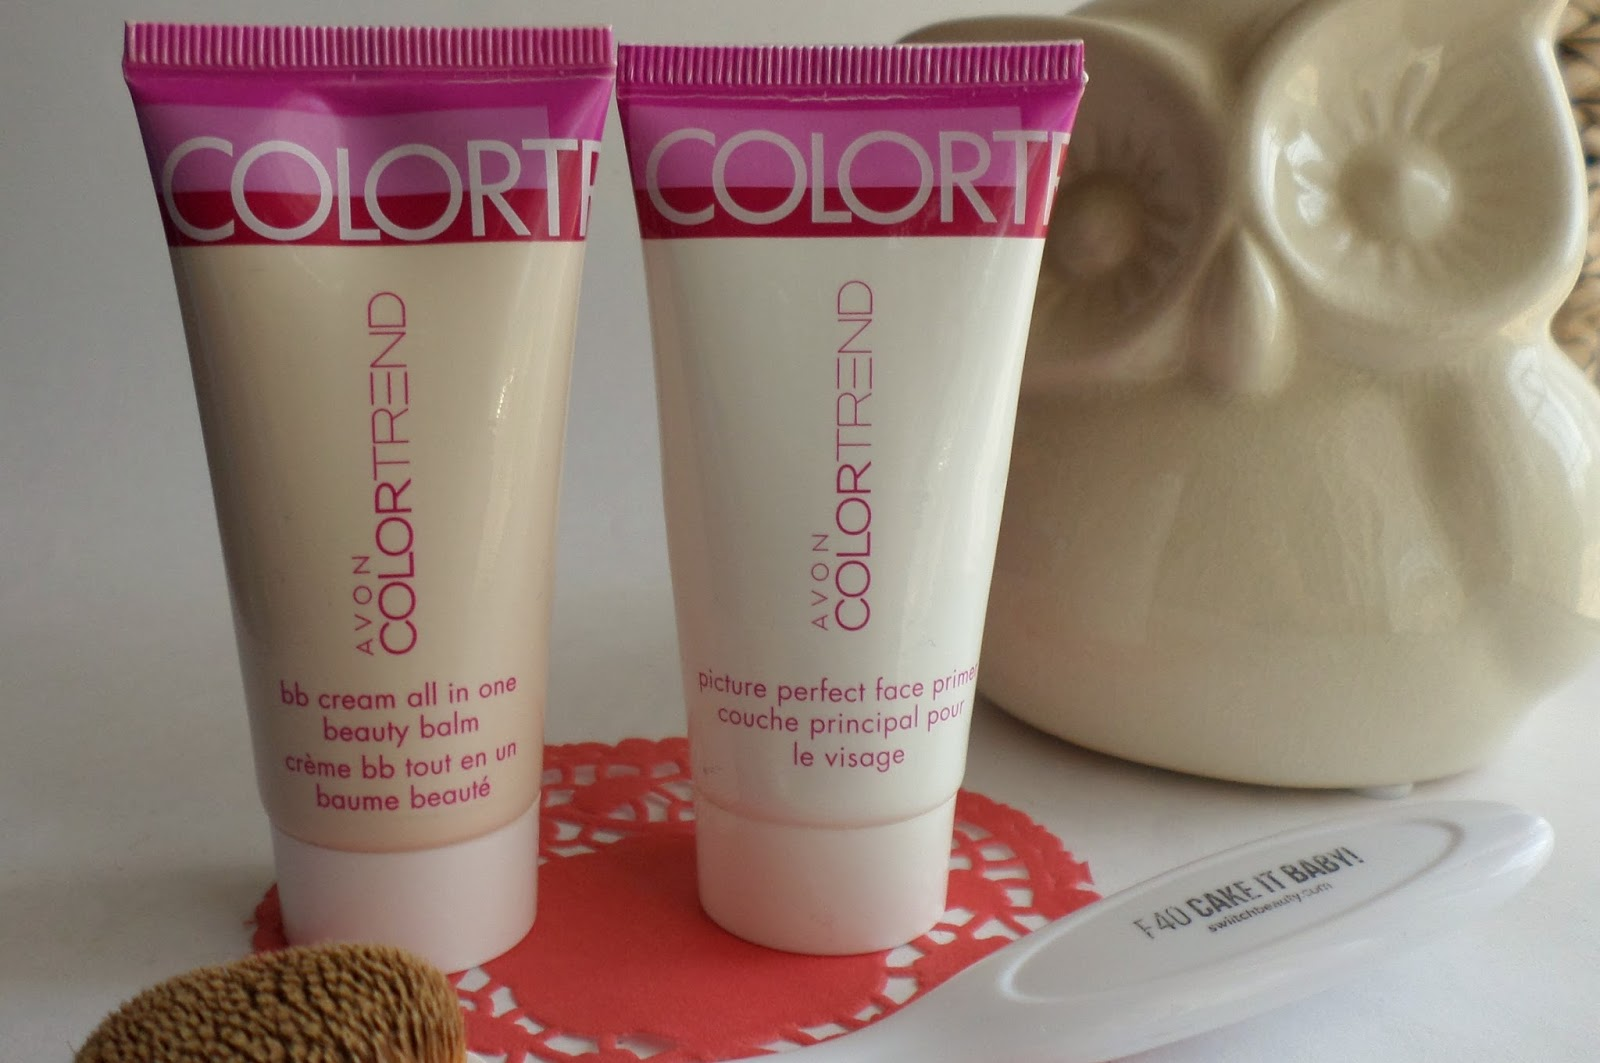 Pink Purple Dots Review Avon Colortrend Bb Cream All In One City Color Holo Primer Oil Beauty Balm Picture Perfect Face